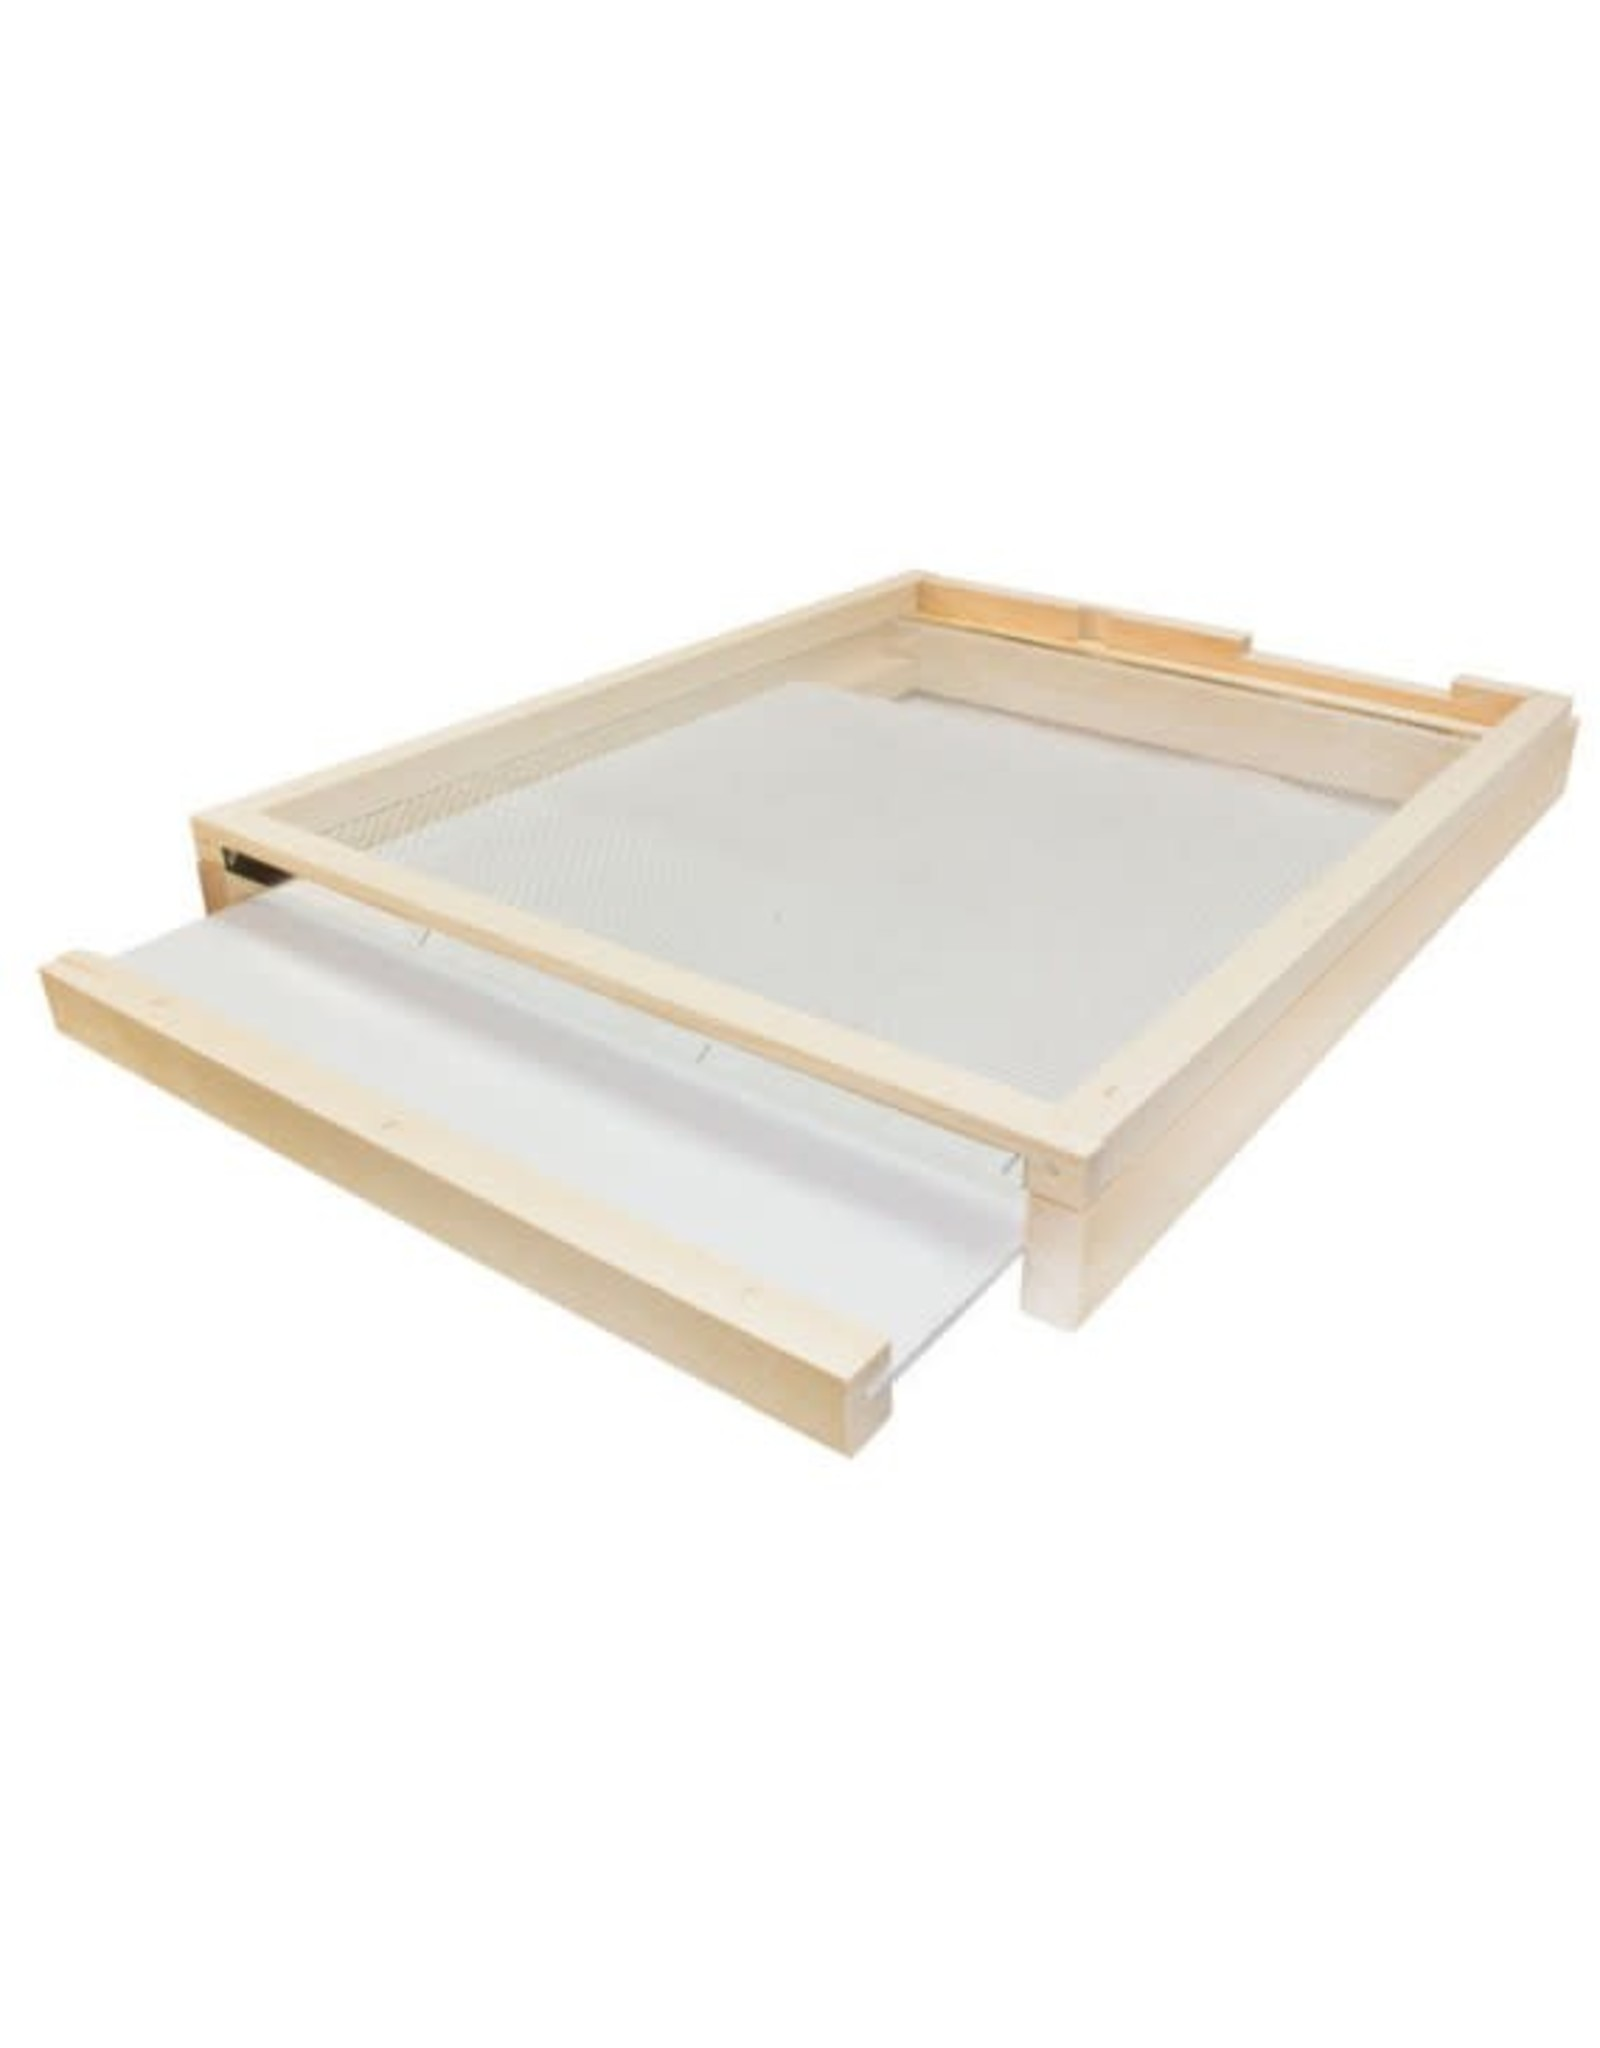 8 Frame Bottom Board Varroa Trap with Drawer